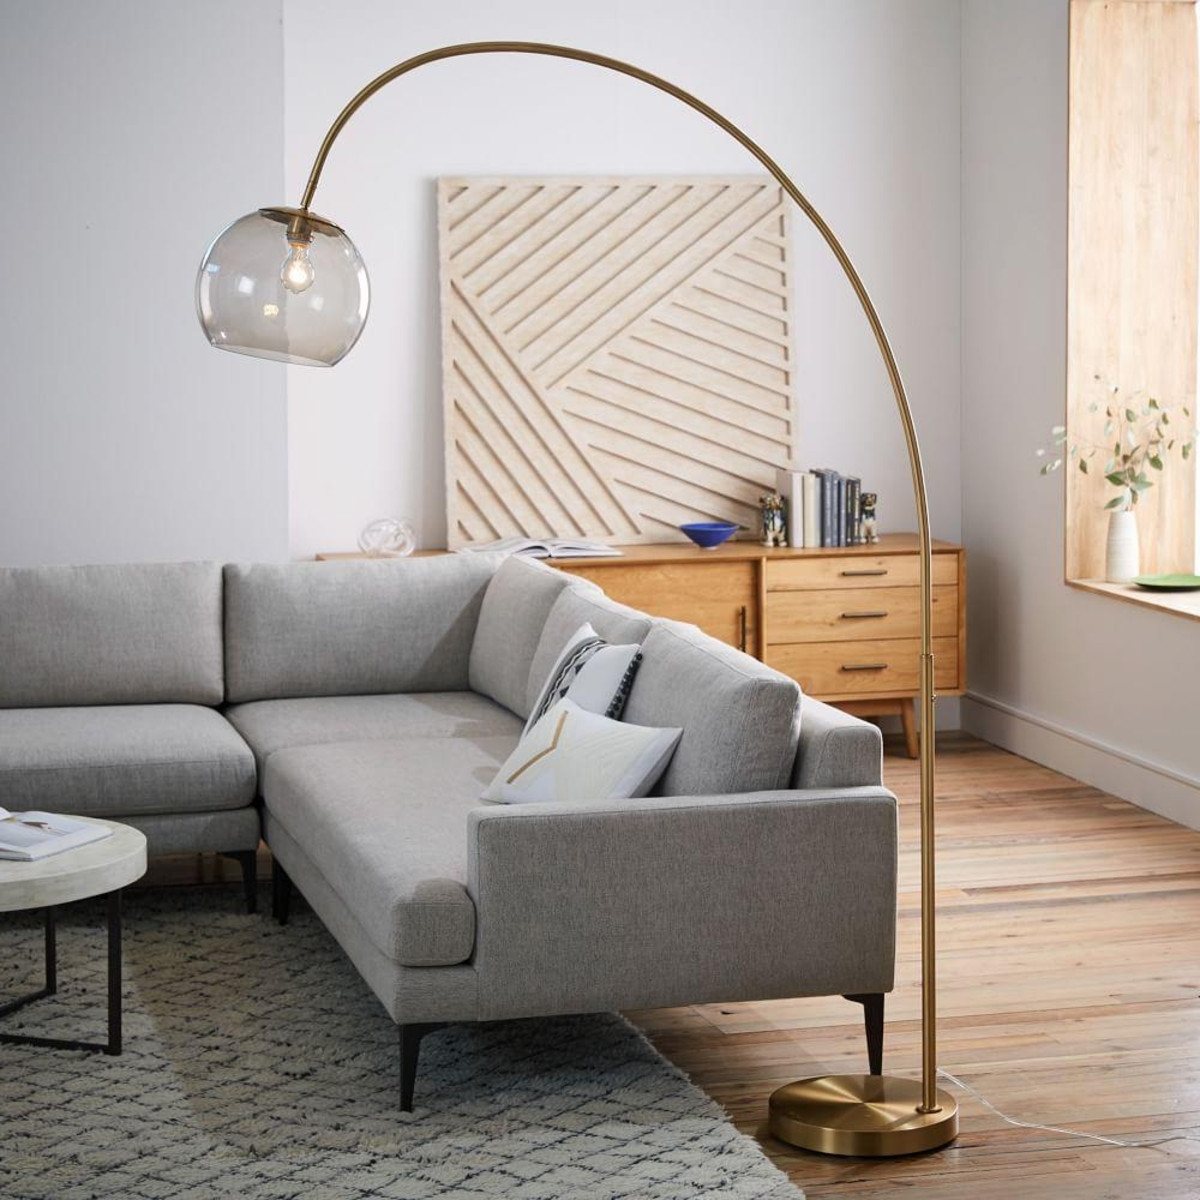 Acrylic Living Room Floor Lamps — S3cparis Lamps Design : Fabulous For Recent Small Living Room Table Lamps (View 11 of 20)